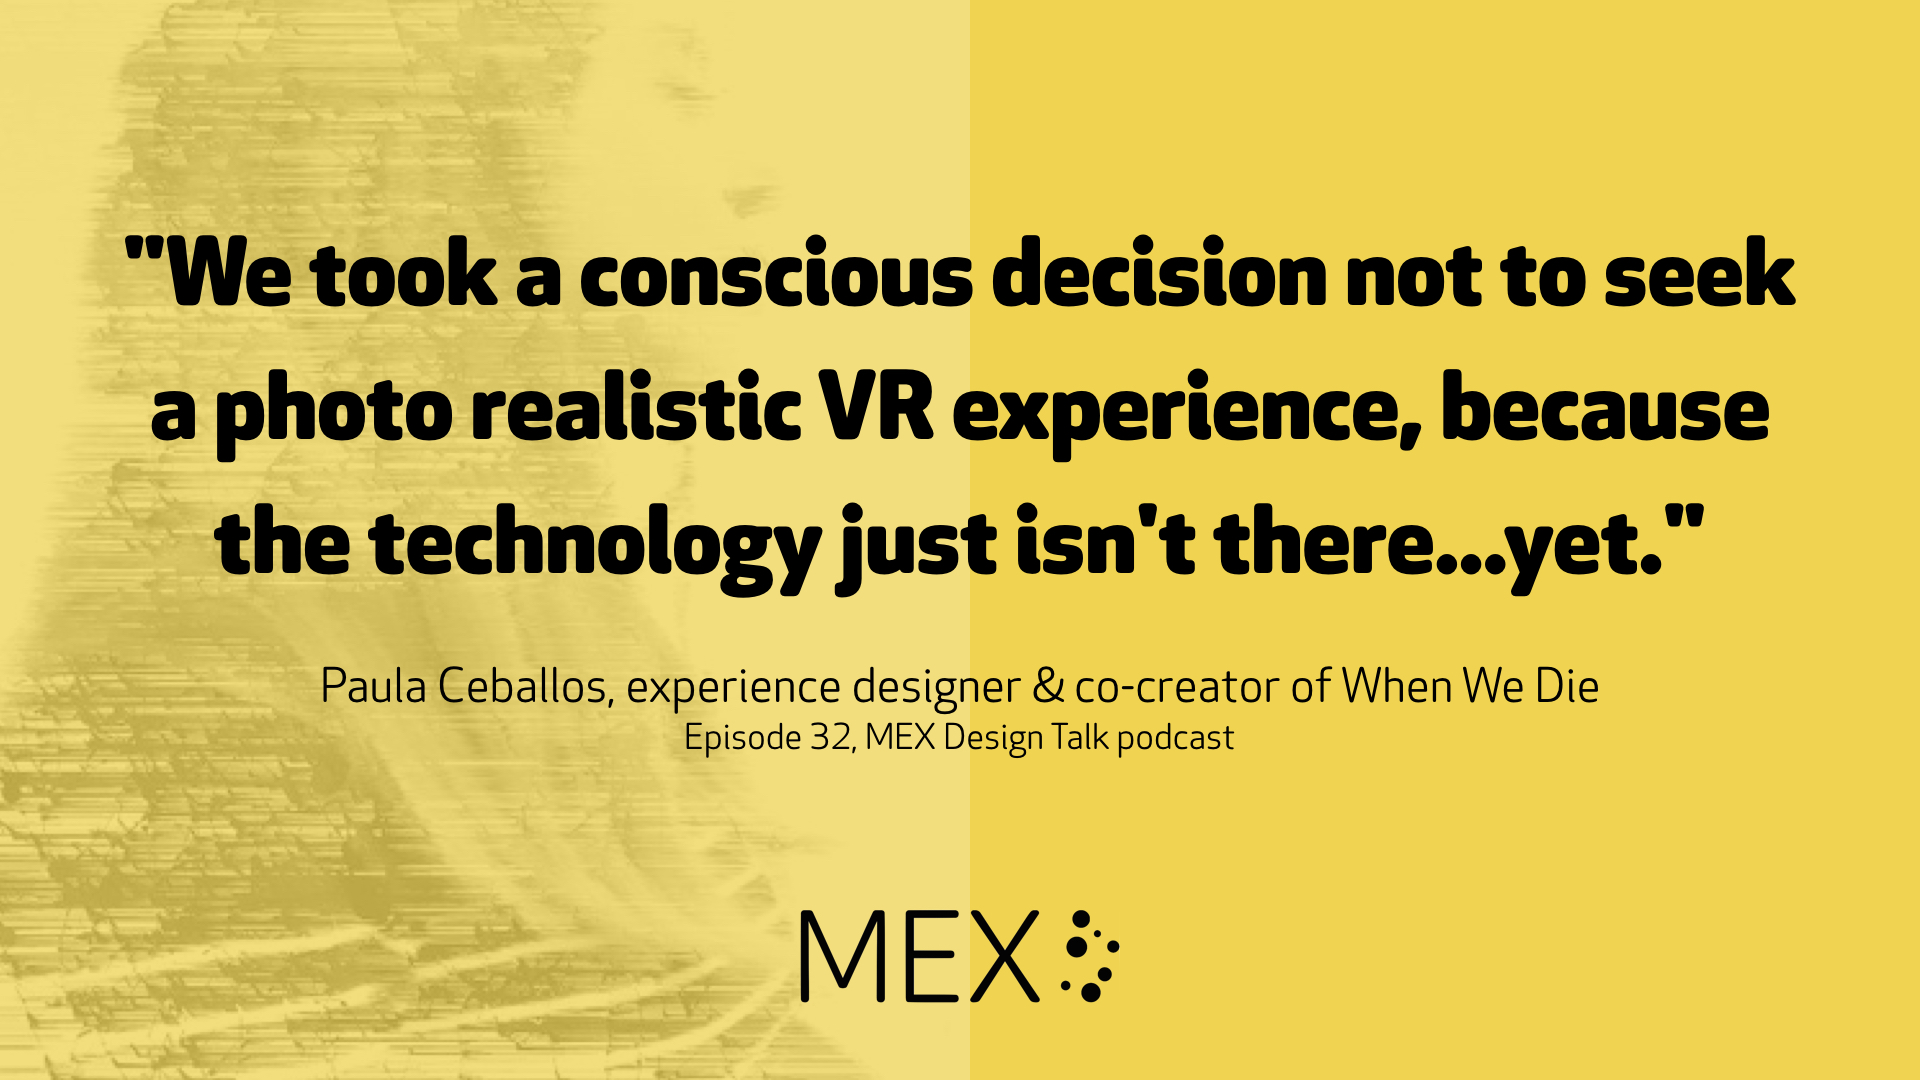 """We took a conscious decision not to seek a photo realistic VR experience, because the technology just isn't there...yet."" Paula Ceballos, experience designer & co-creator of When We Die Episode 32, MEX Design Talk podcast"